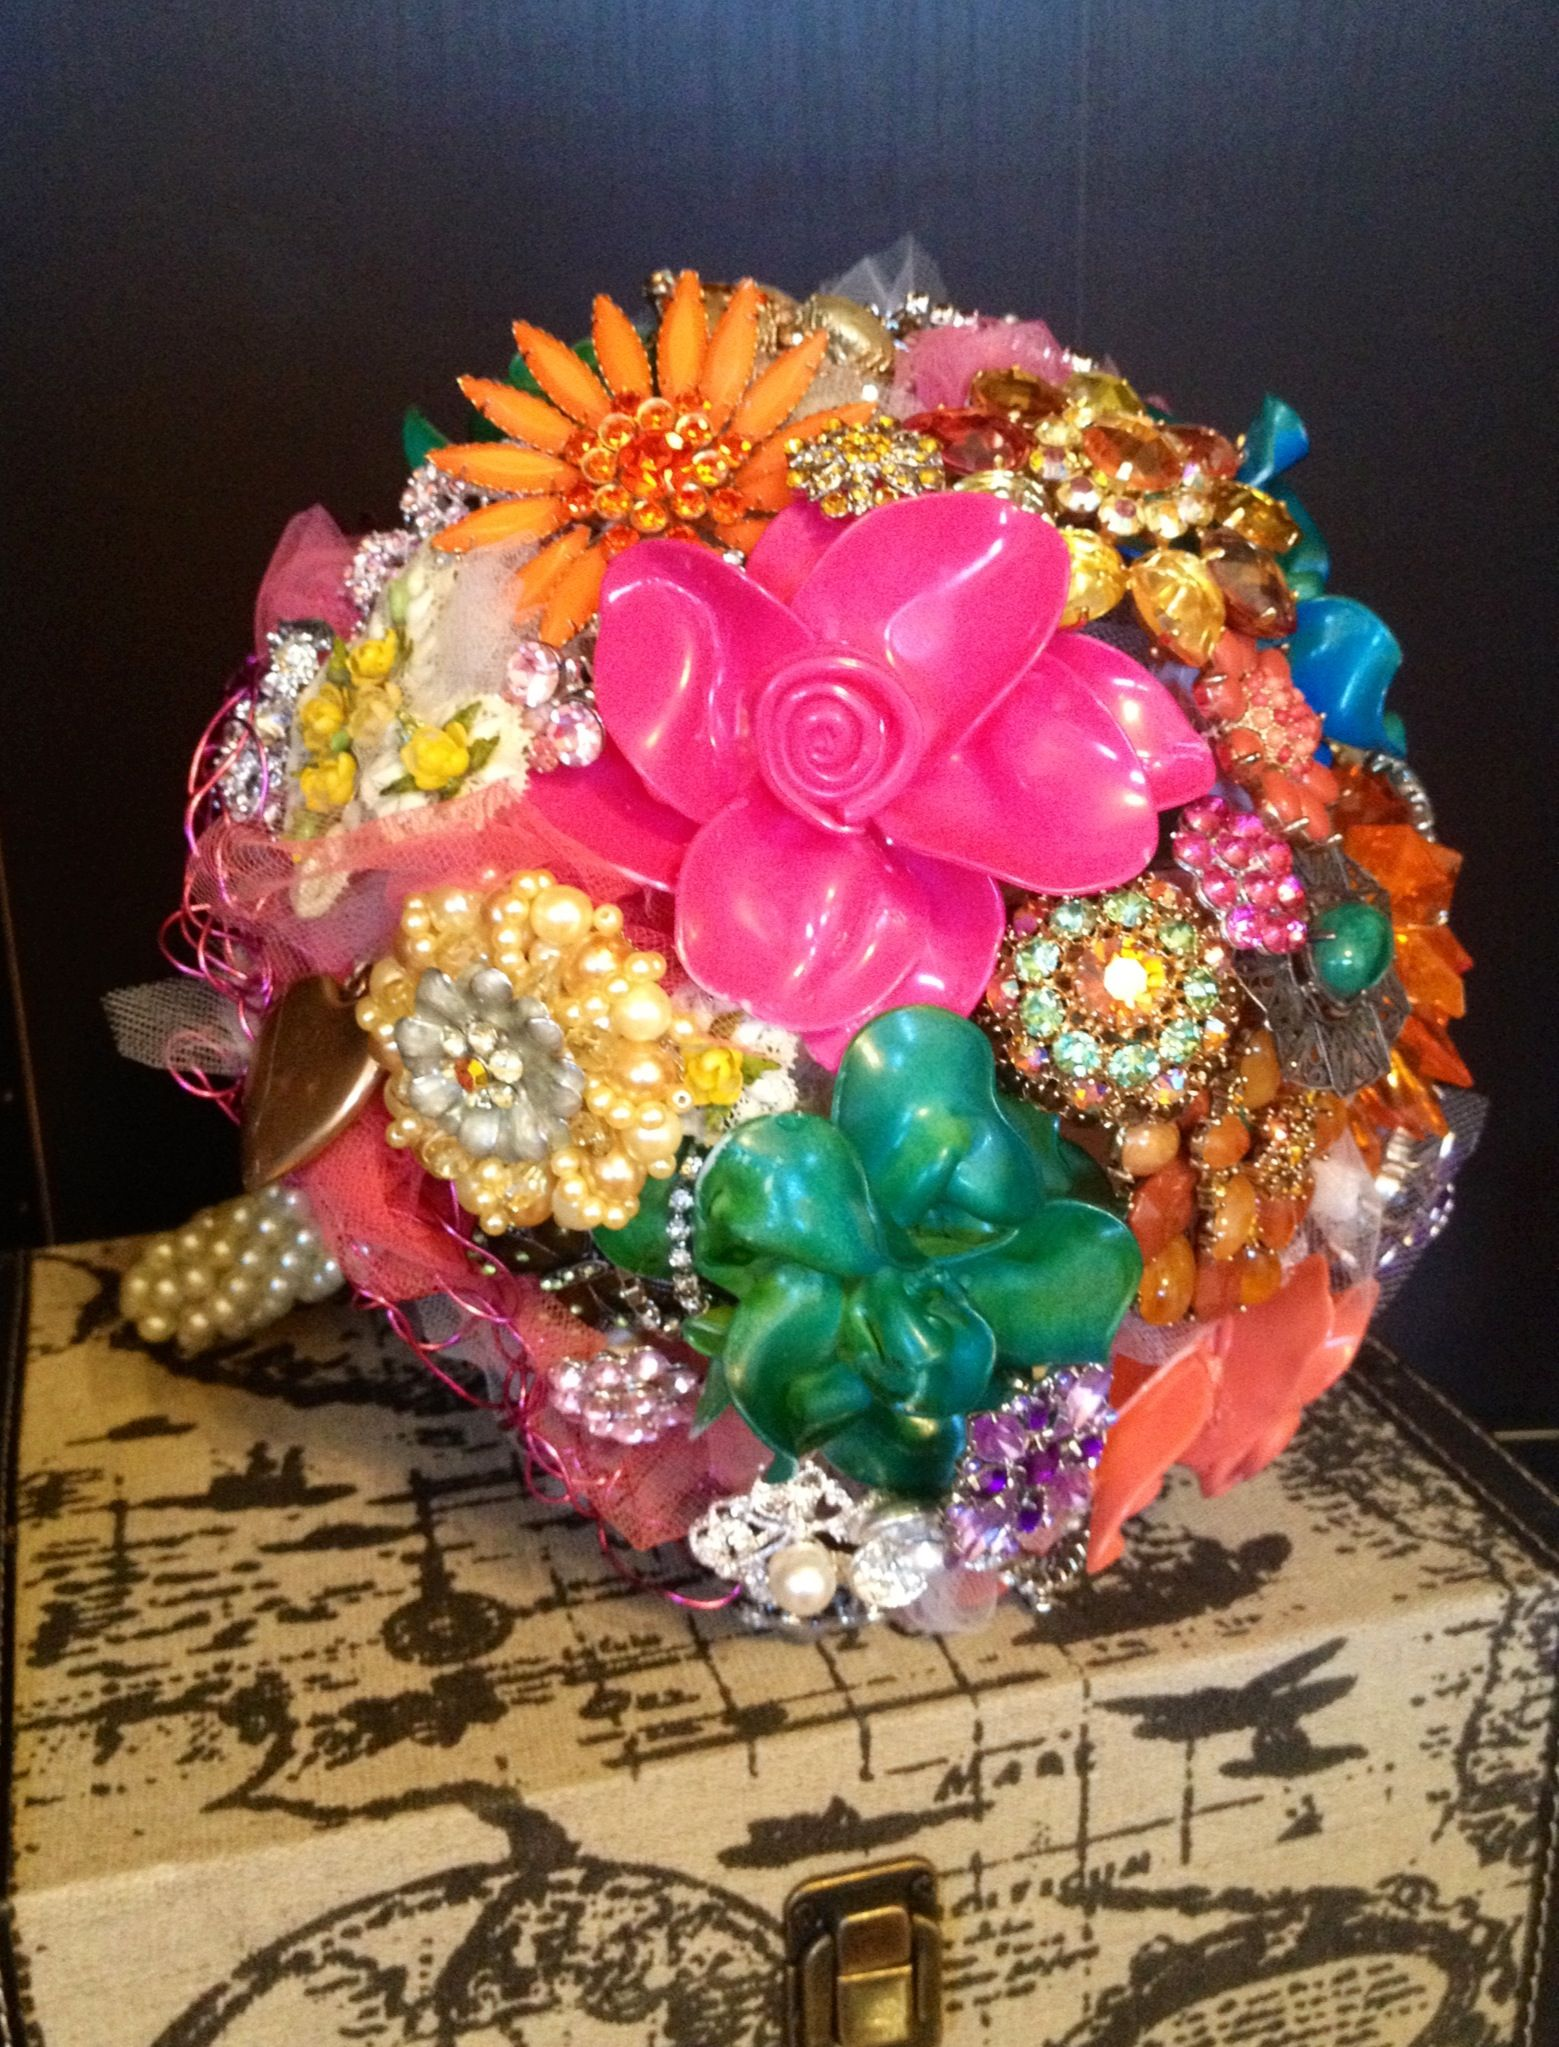 Loved Making This Crazy Brooch Bouquet With Spoon Flowers So Fun